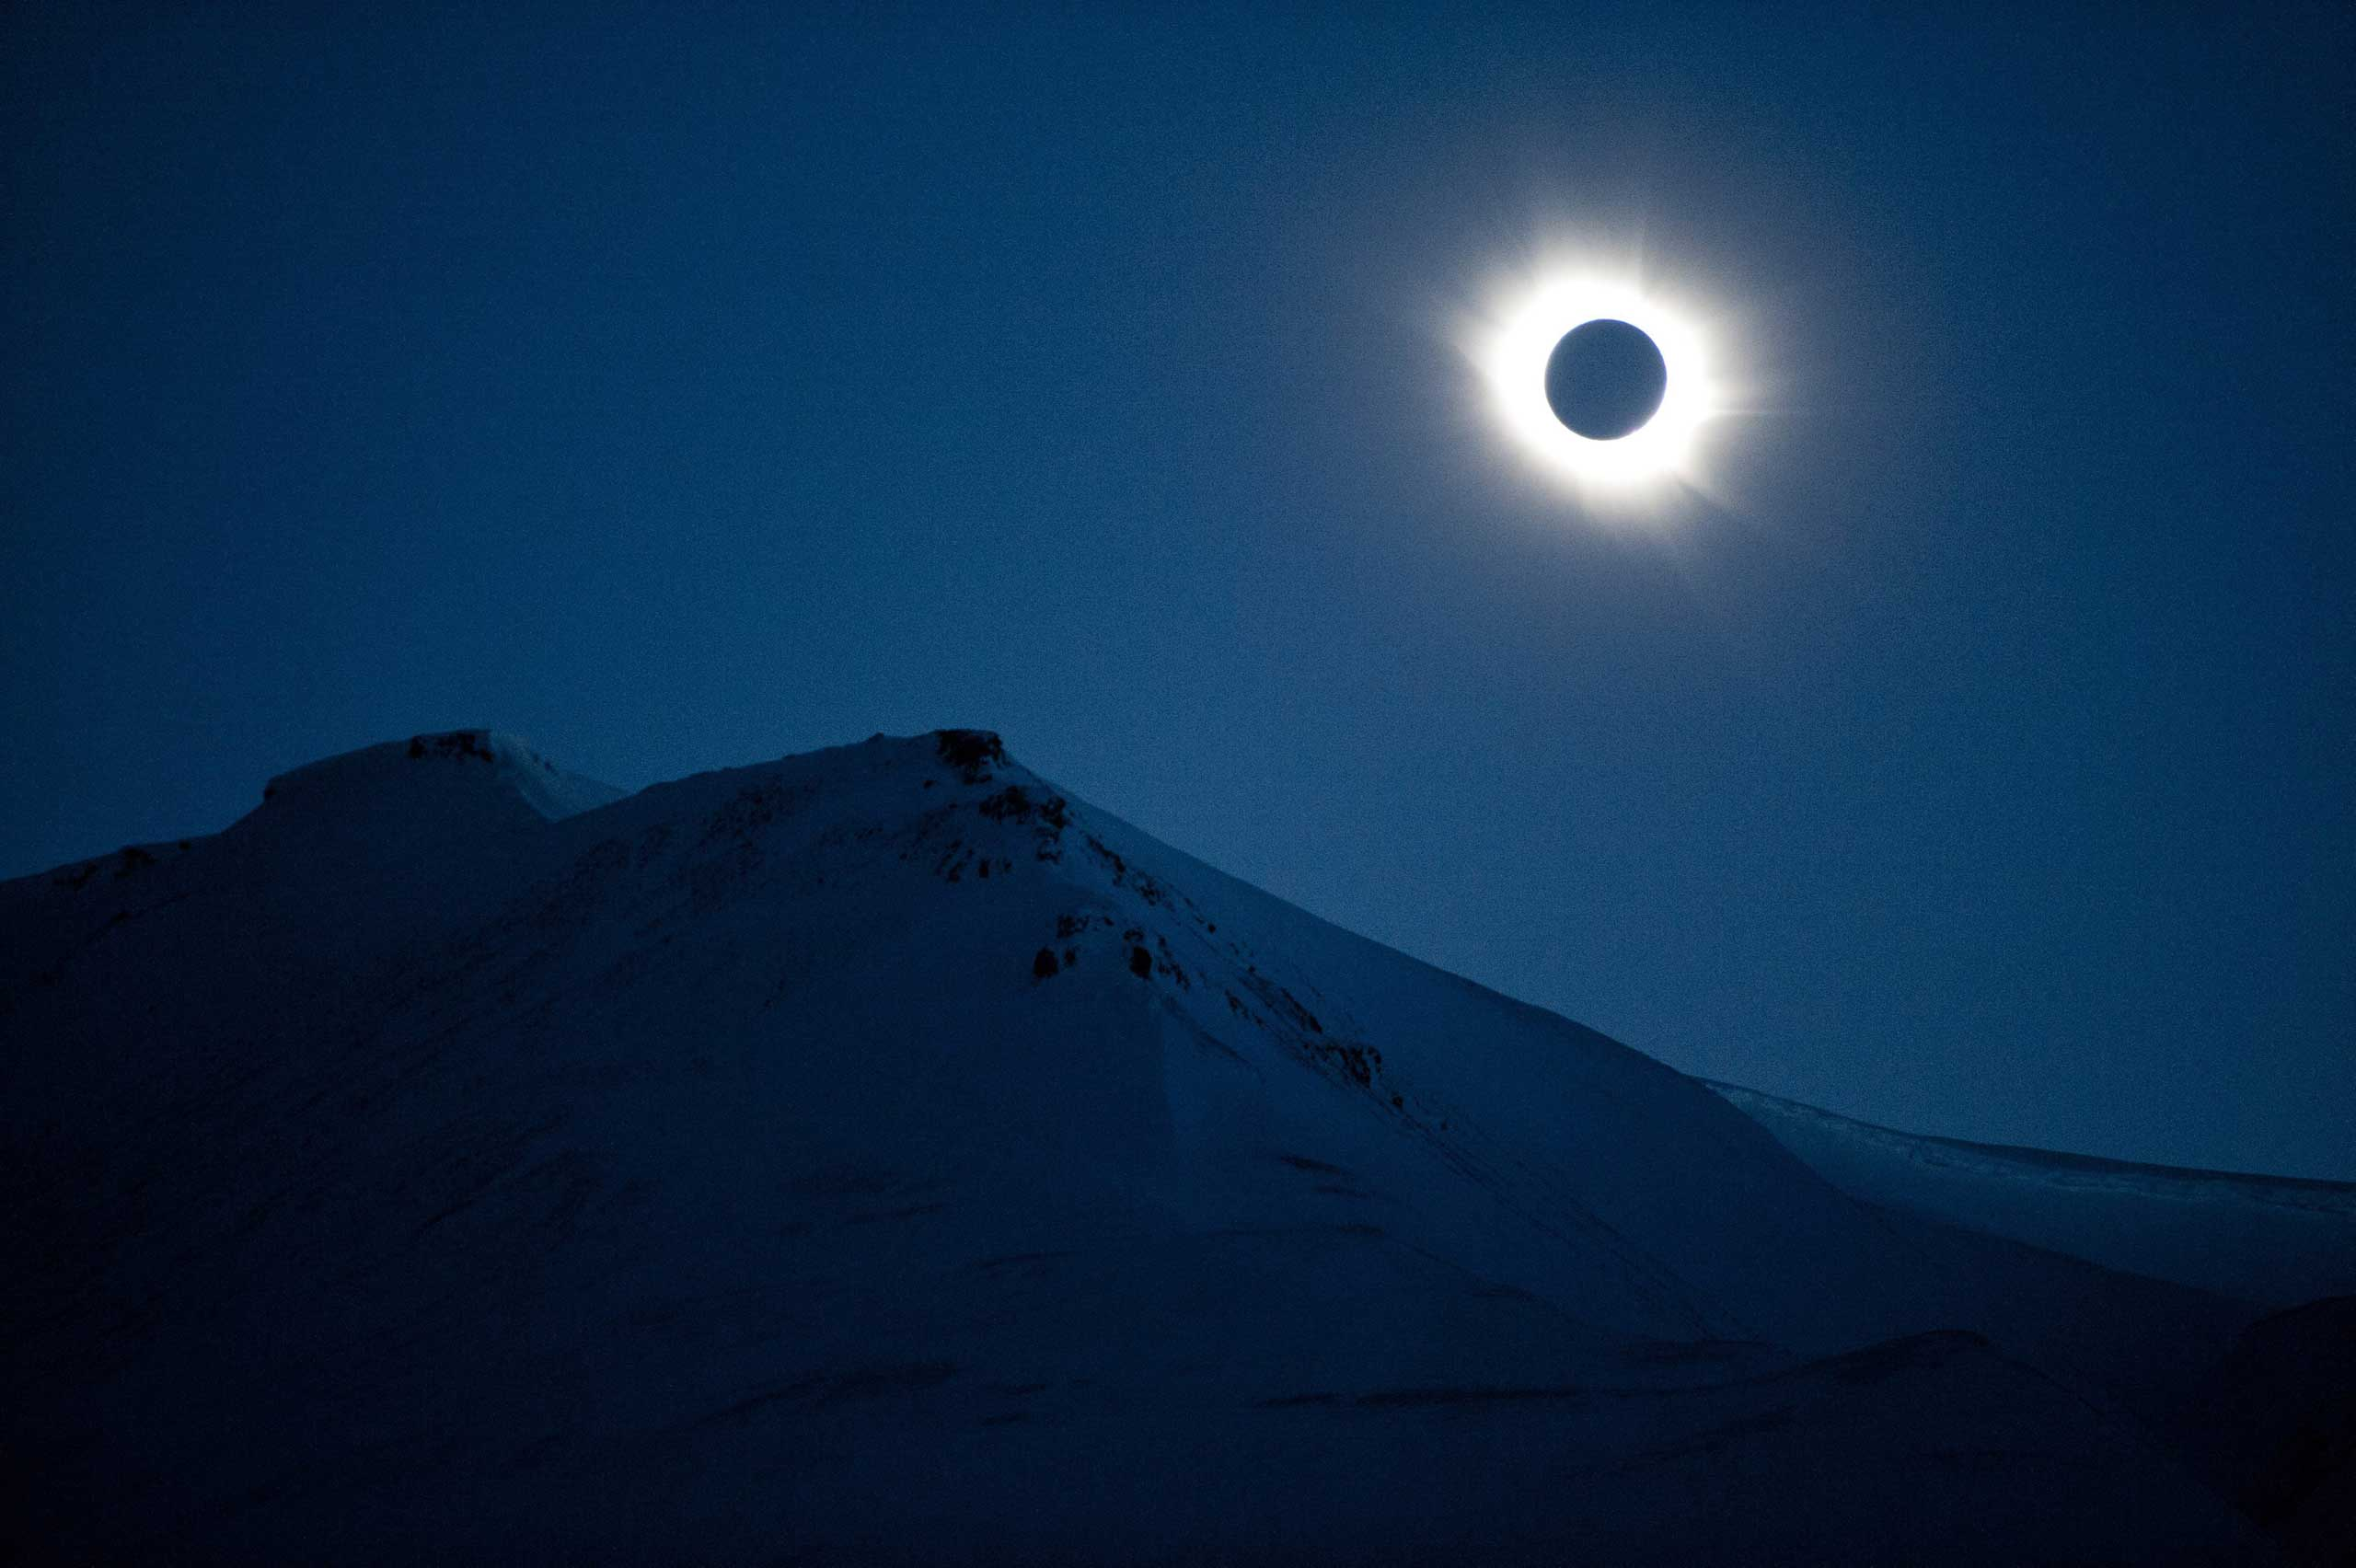 The total solar eclipse seen from Svalbard, Norway on March 20, 2015.